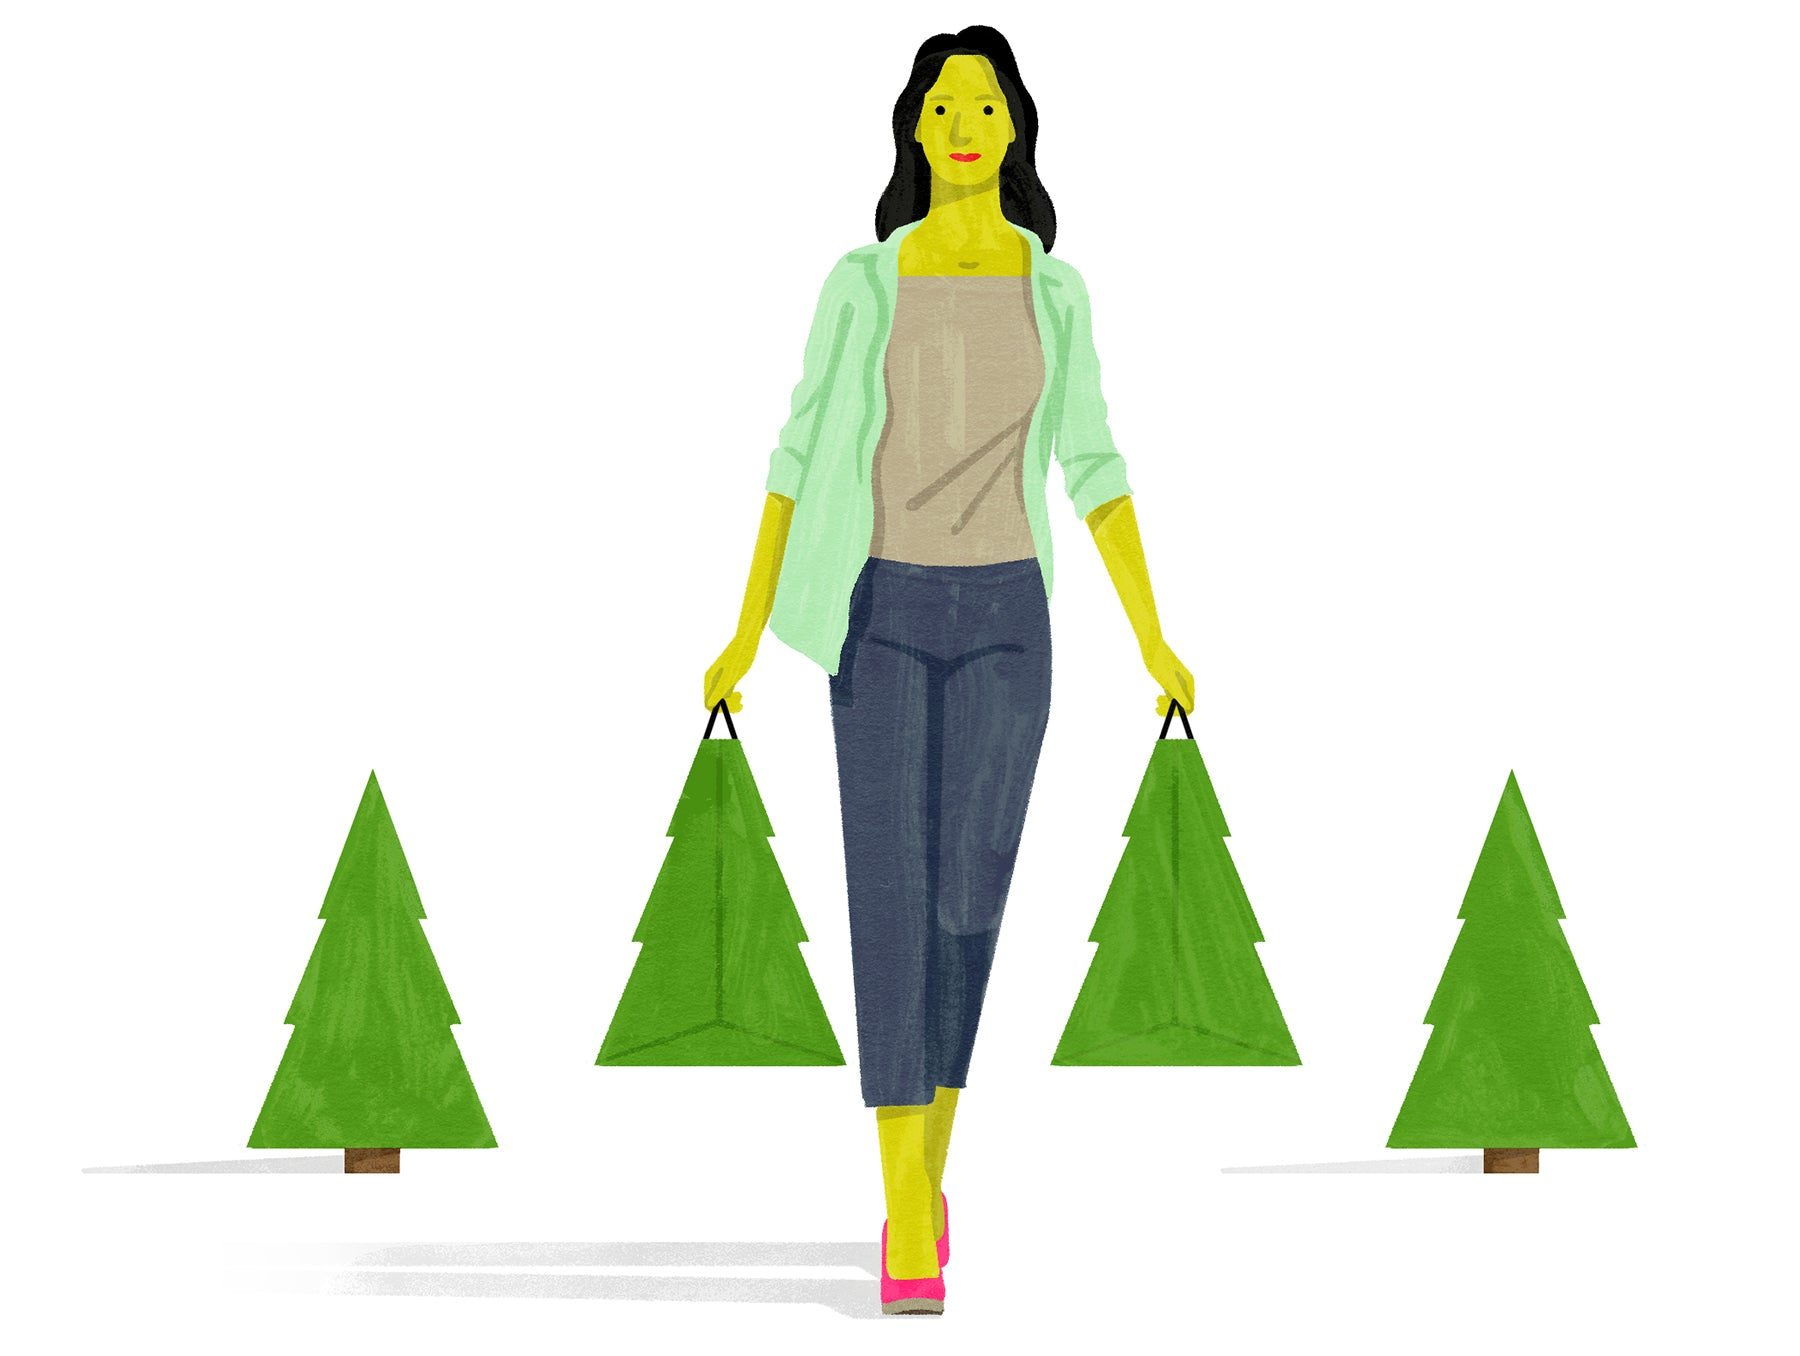 Woman carries shopping bags shaped like trees